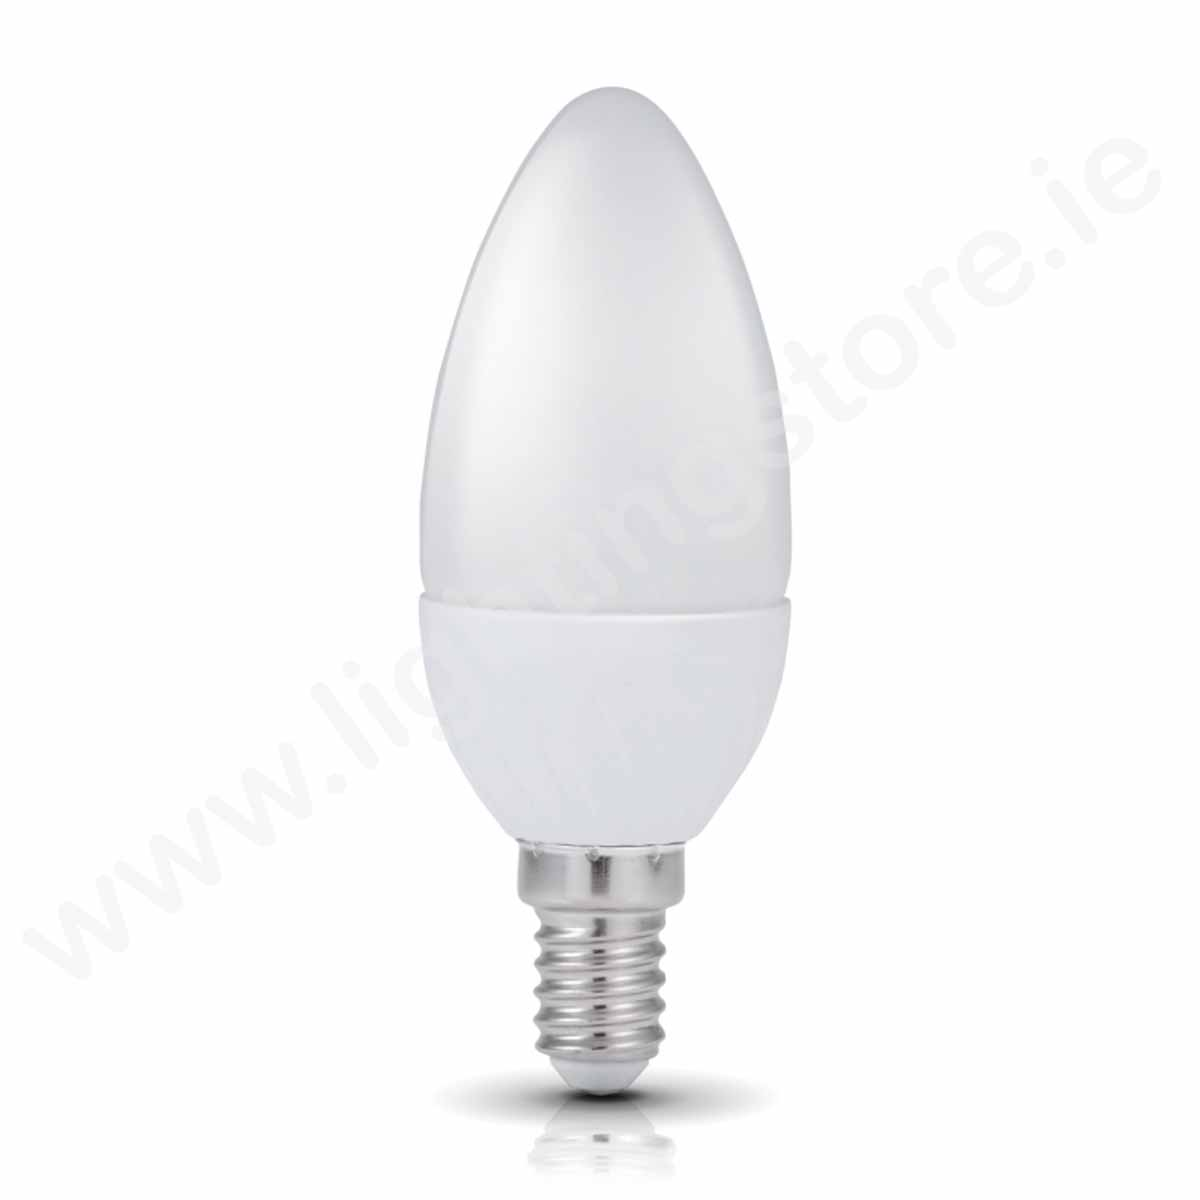 Kobi Candle E14 Non Dimmable Warm White 6W